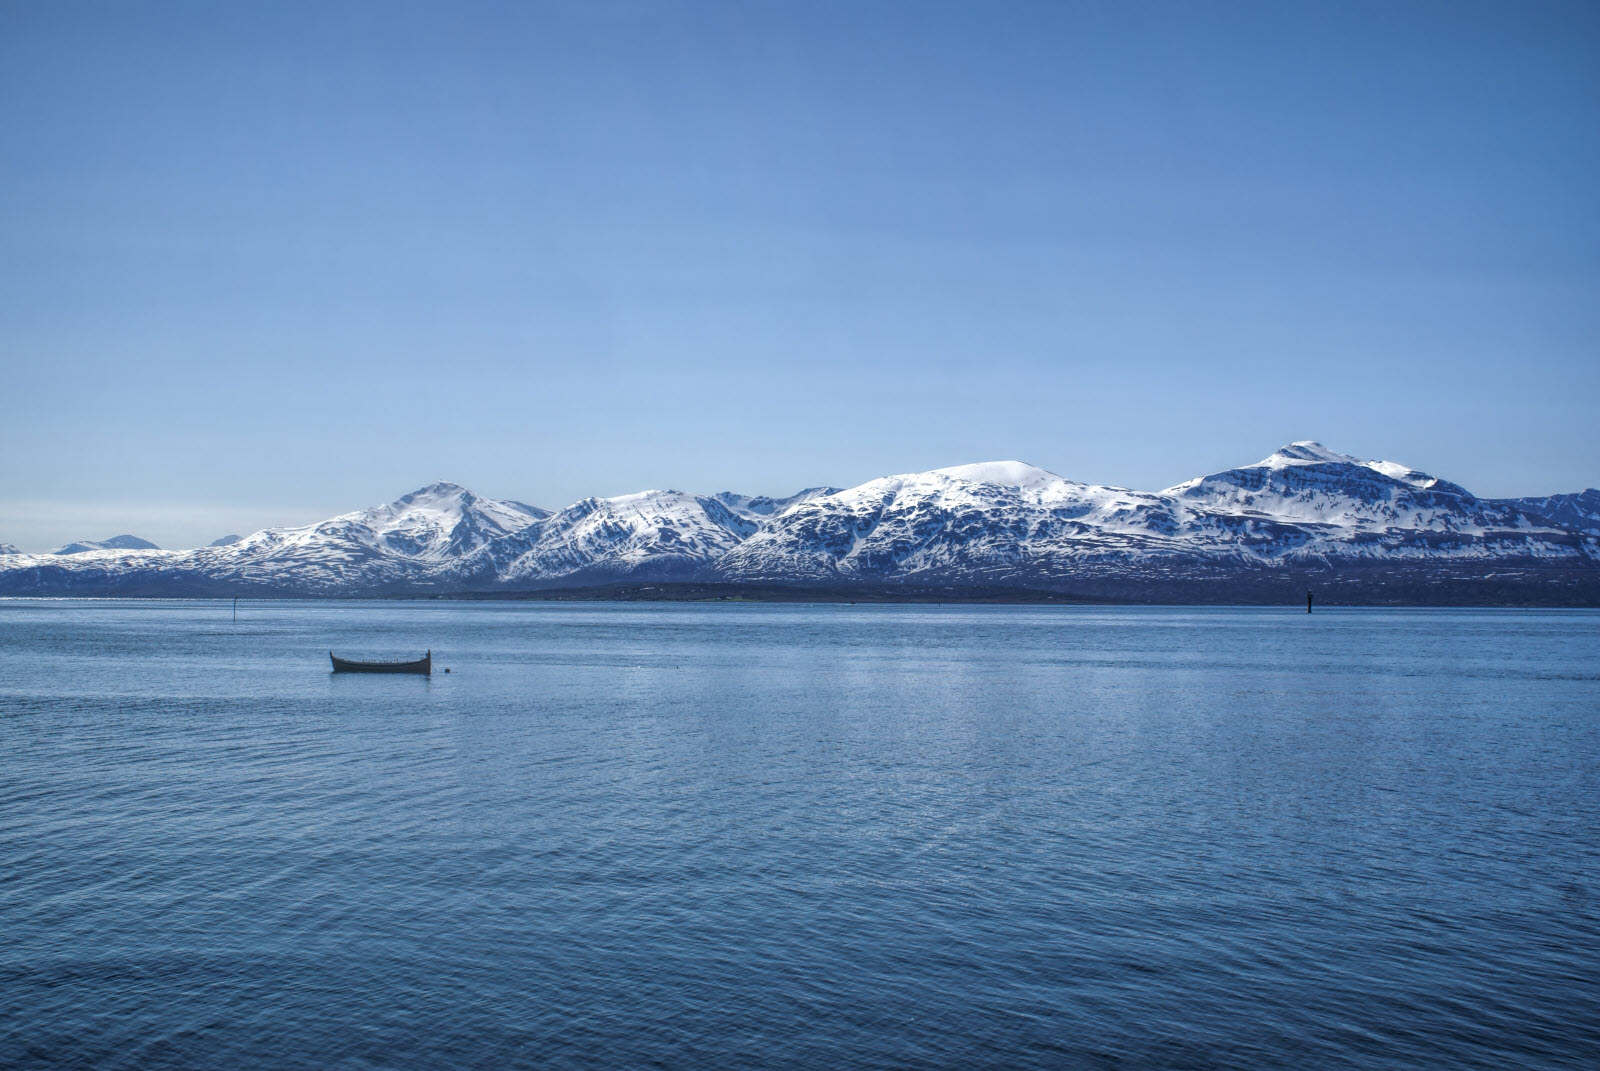 9533471-tromso-norway_by_Michal_Knitl.jpg